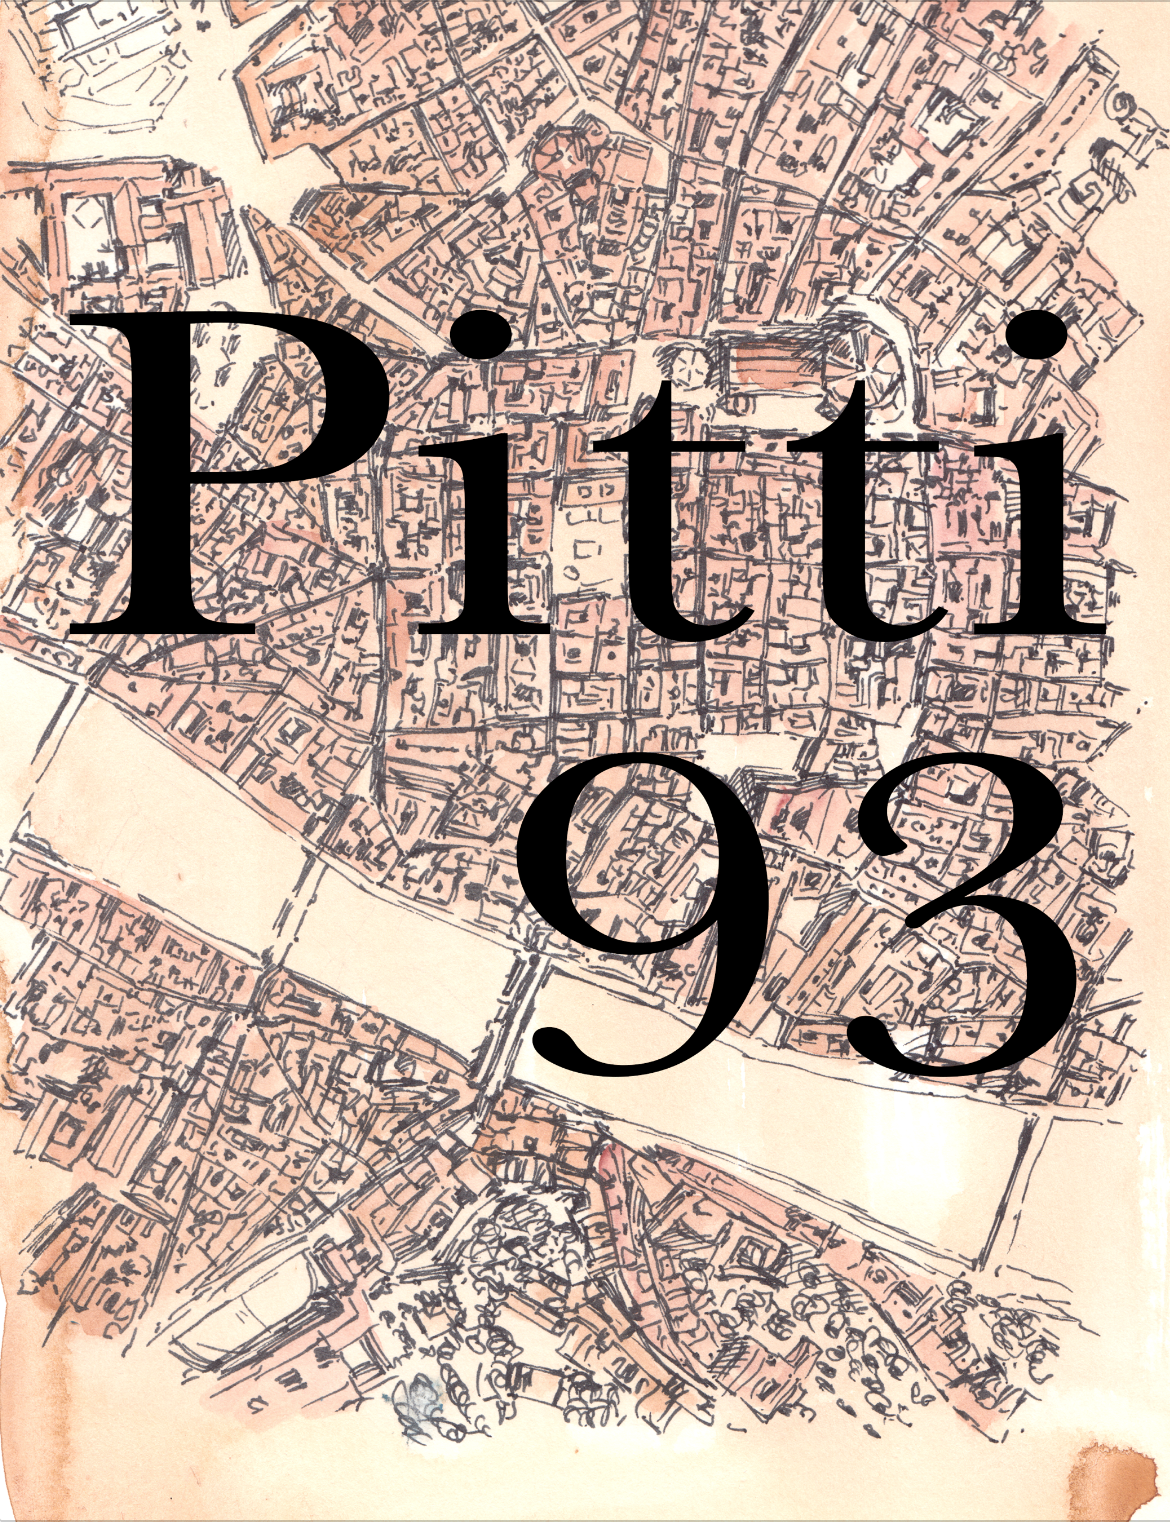 Pitti 93 Illustrated Mag. Special Edition, 'Florence Map' Cover. $100 - A Sunflowerman Project.This Magazine Publication features the style, the men and the women of Pitti Uomo, season 93.-Signed Edition-Comes with original Sunflowerman Sketch-Shipped by Sunflowerman